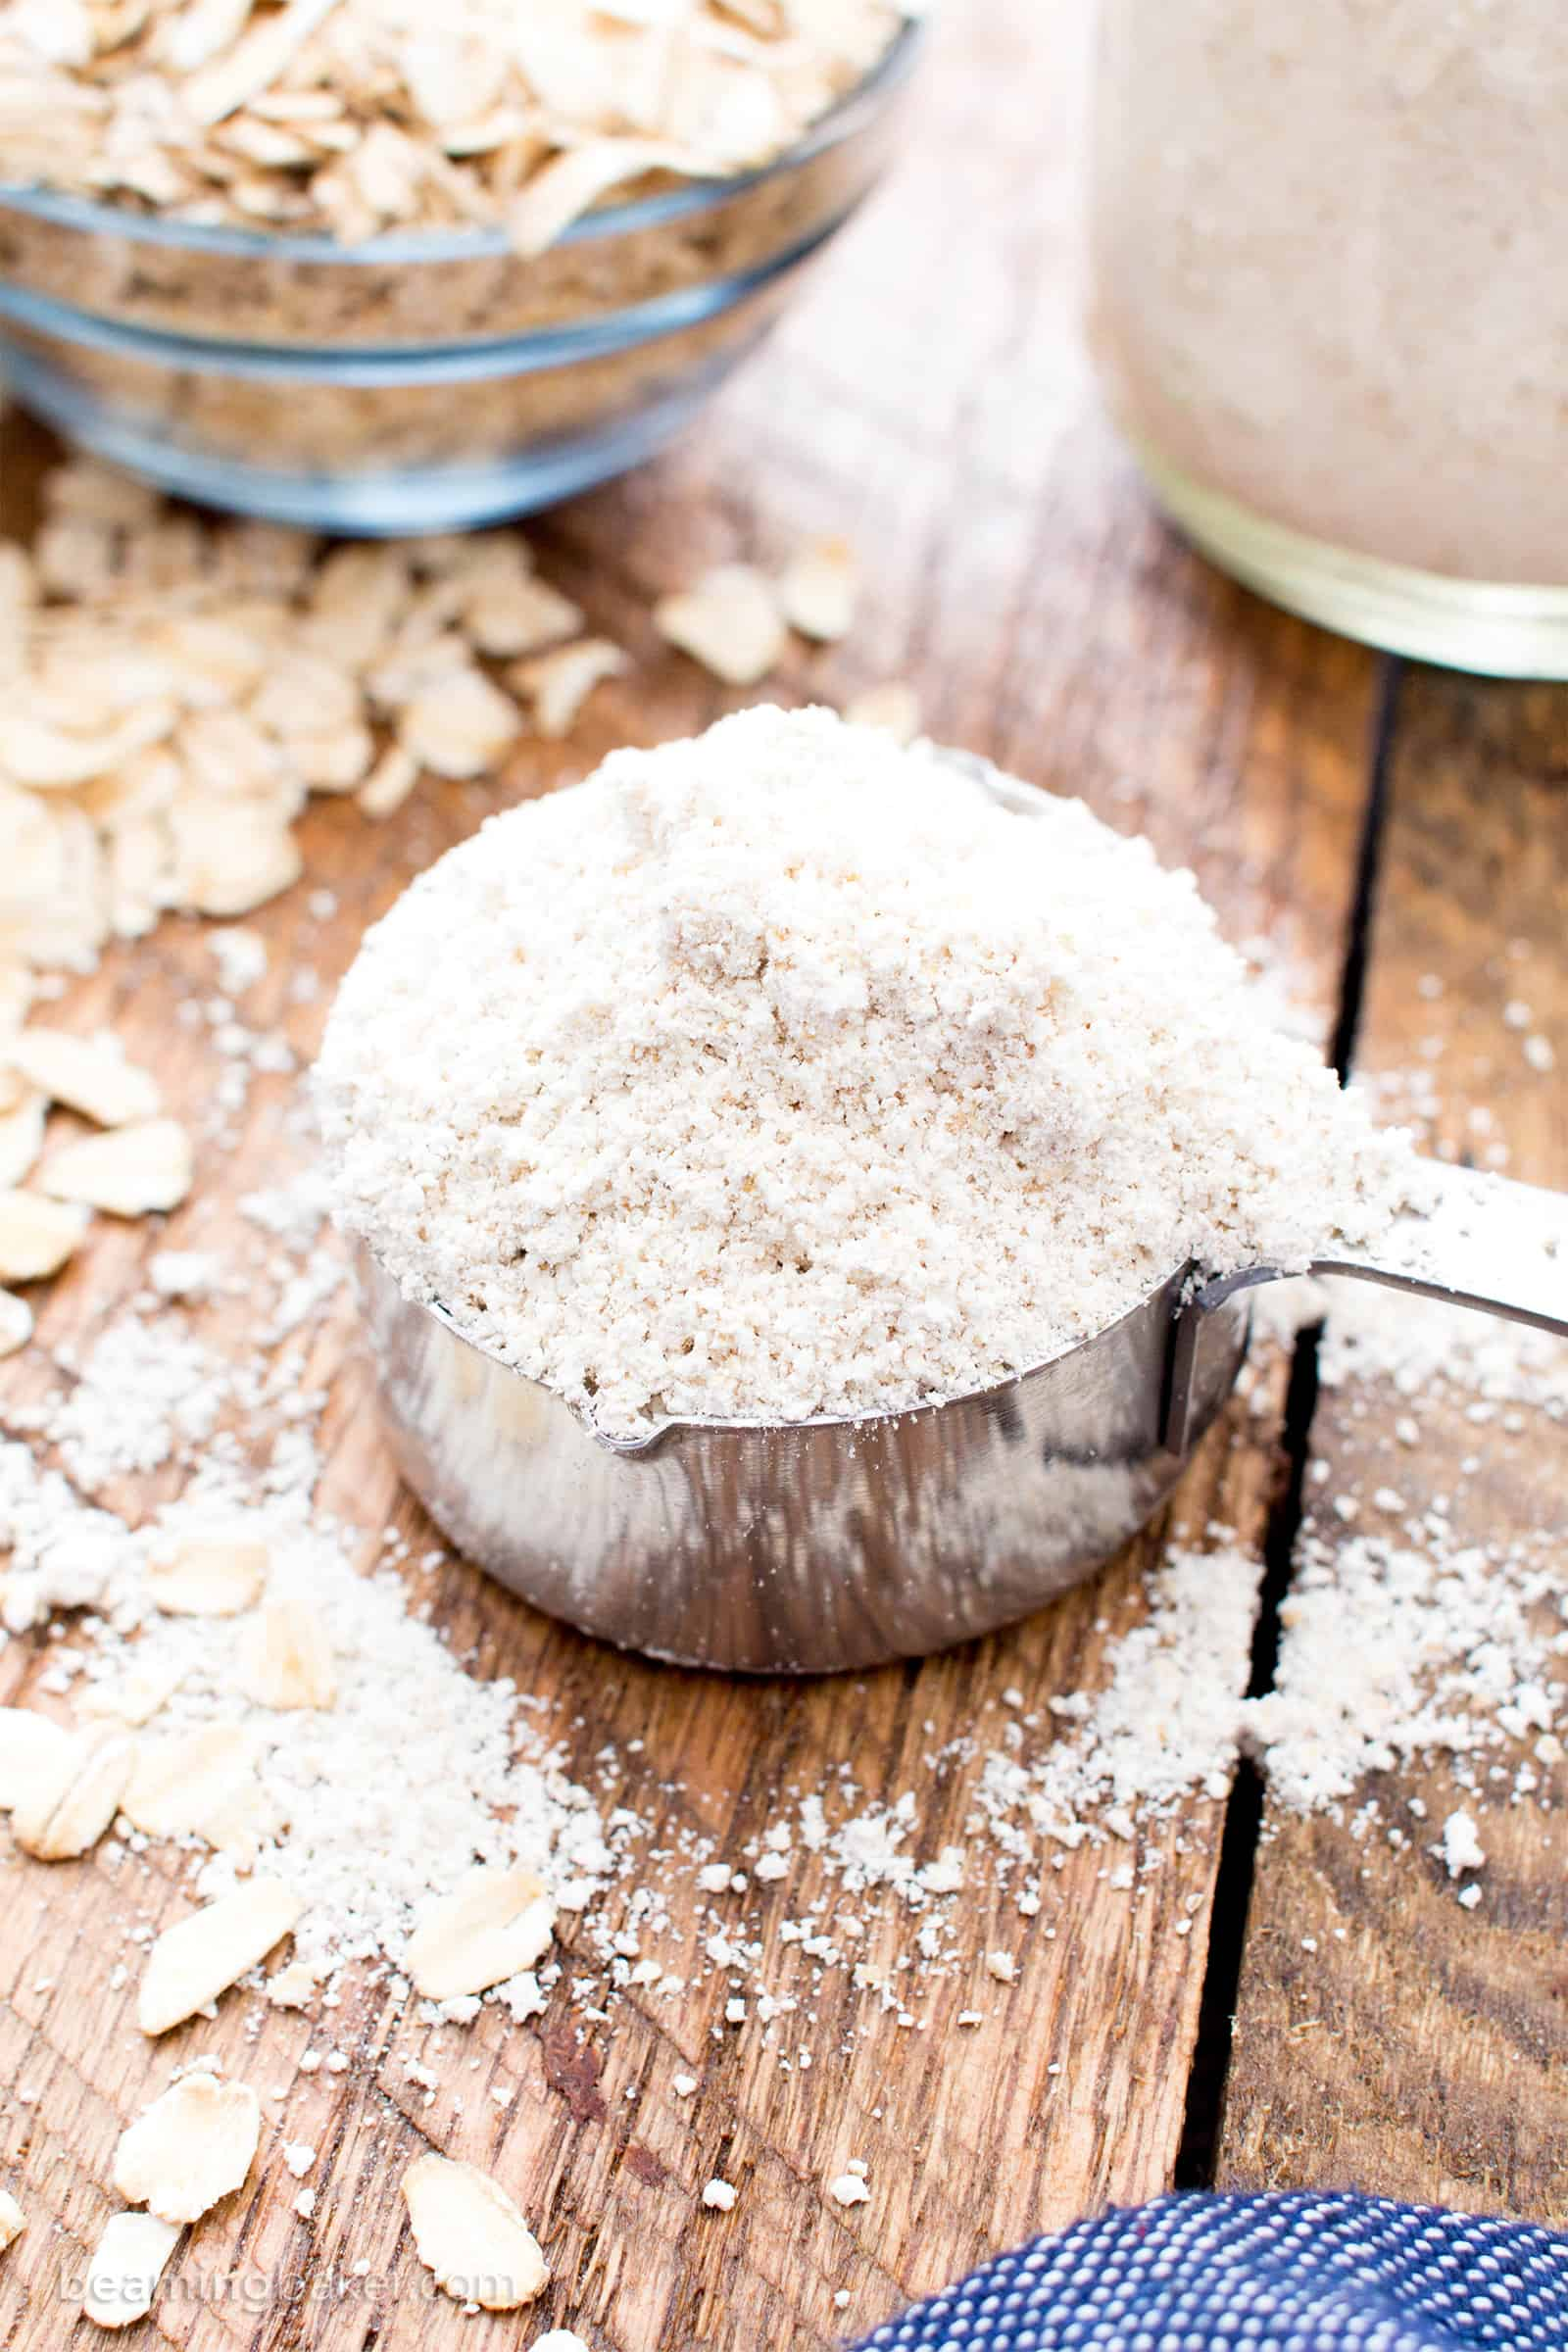 How to Make Homemade Oat Flour (V, GF): a step-by-step tutorial and guide on how to your own gluten-free oat flour at home. #Vegan #GlutenFree #DairyFree #Healthy #HealthyBaking #WholeGrain | Recipe on BeamingBaker.com